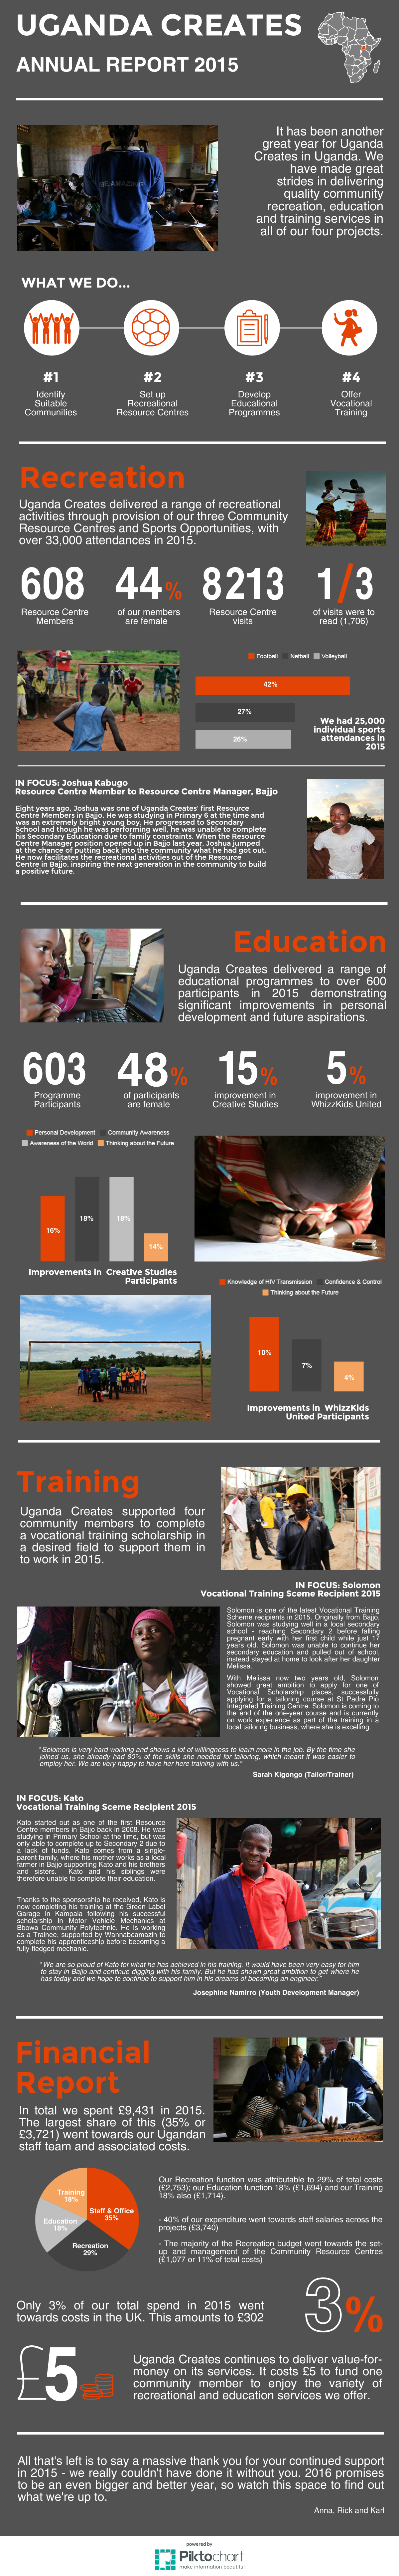 Annual Report Infographic 2015.png